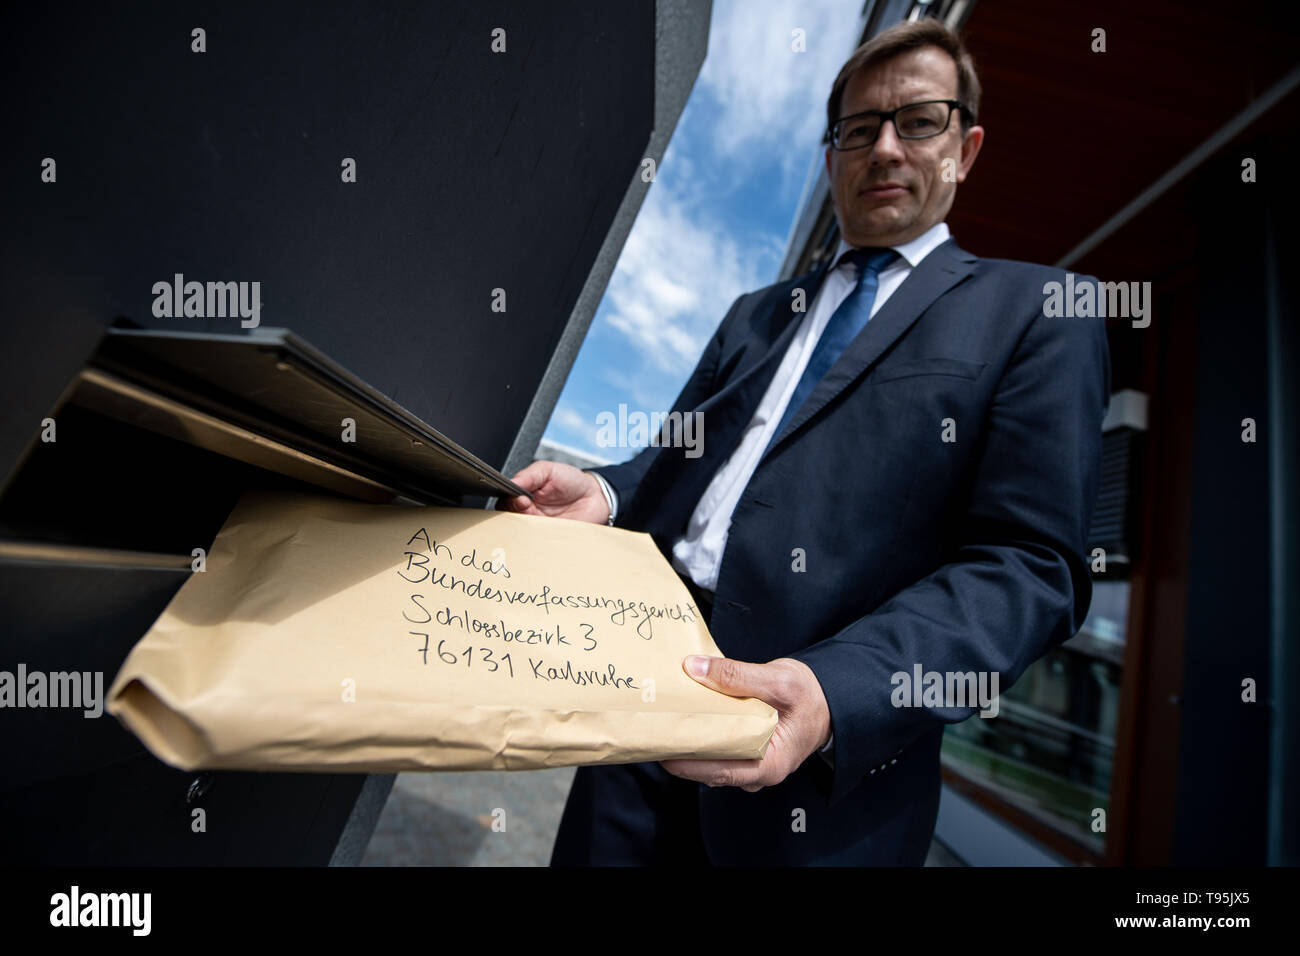 Karlsruhe, Germany. 16th May, 2019. Roman Huber, Federal Executive Director for More Democracy, files a constitutional complaint before the Federal Constitutional Court against the EU trade agreement with Singapore. The complaint by Foodwatch, Mehr Demokratie and Campact is supported by more than 13,000 citizens. Credit: Fabian Sommer/dpa/Alamy Live News Stock Photo